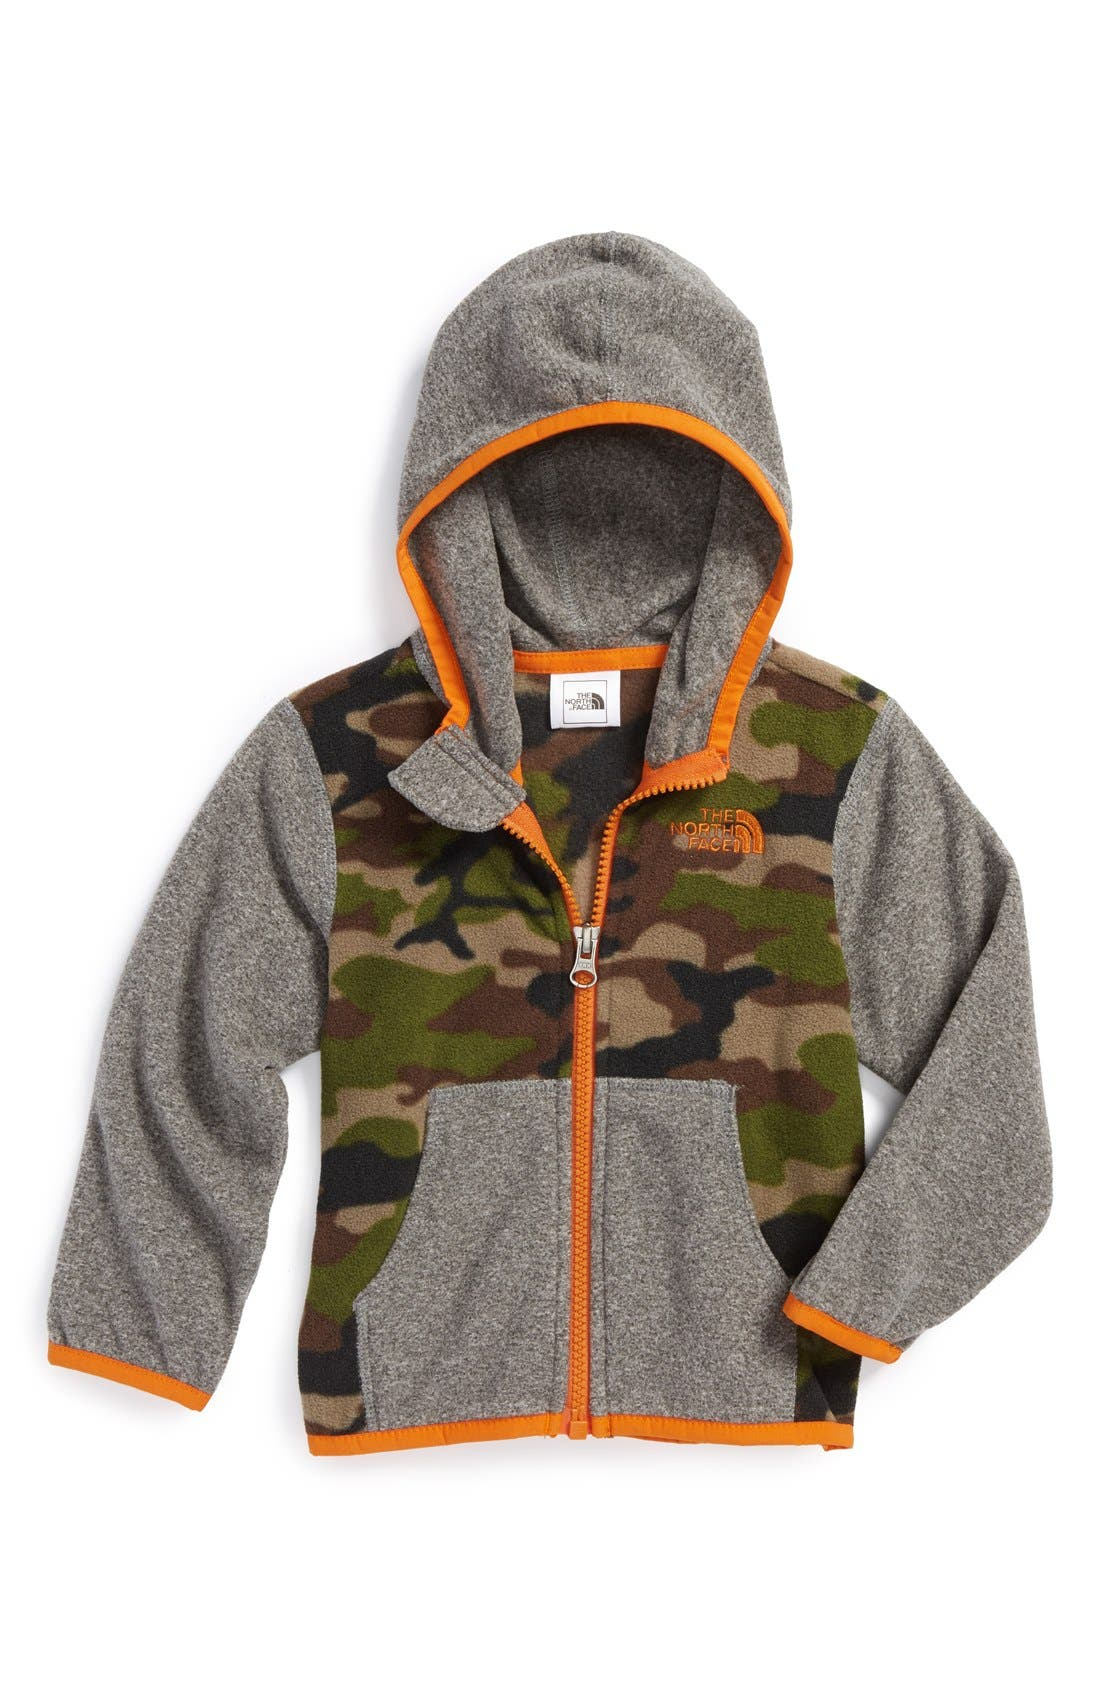 Main Image - The North Face 'Glacier' Hoodie (Baby Boys)